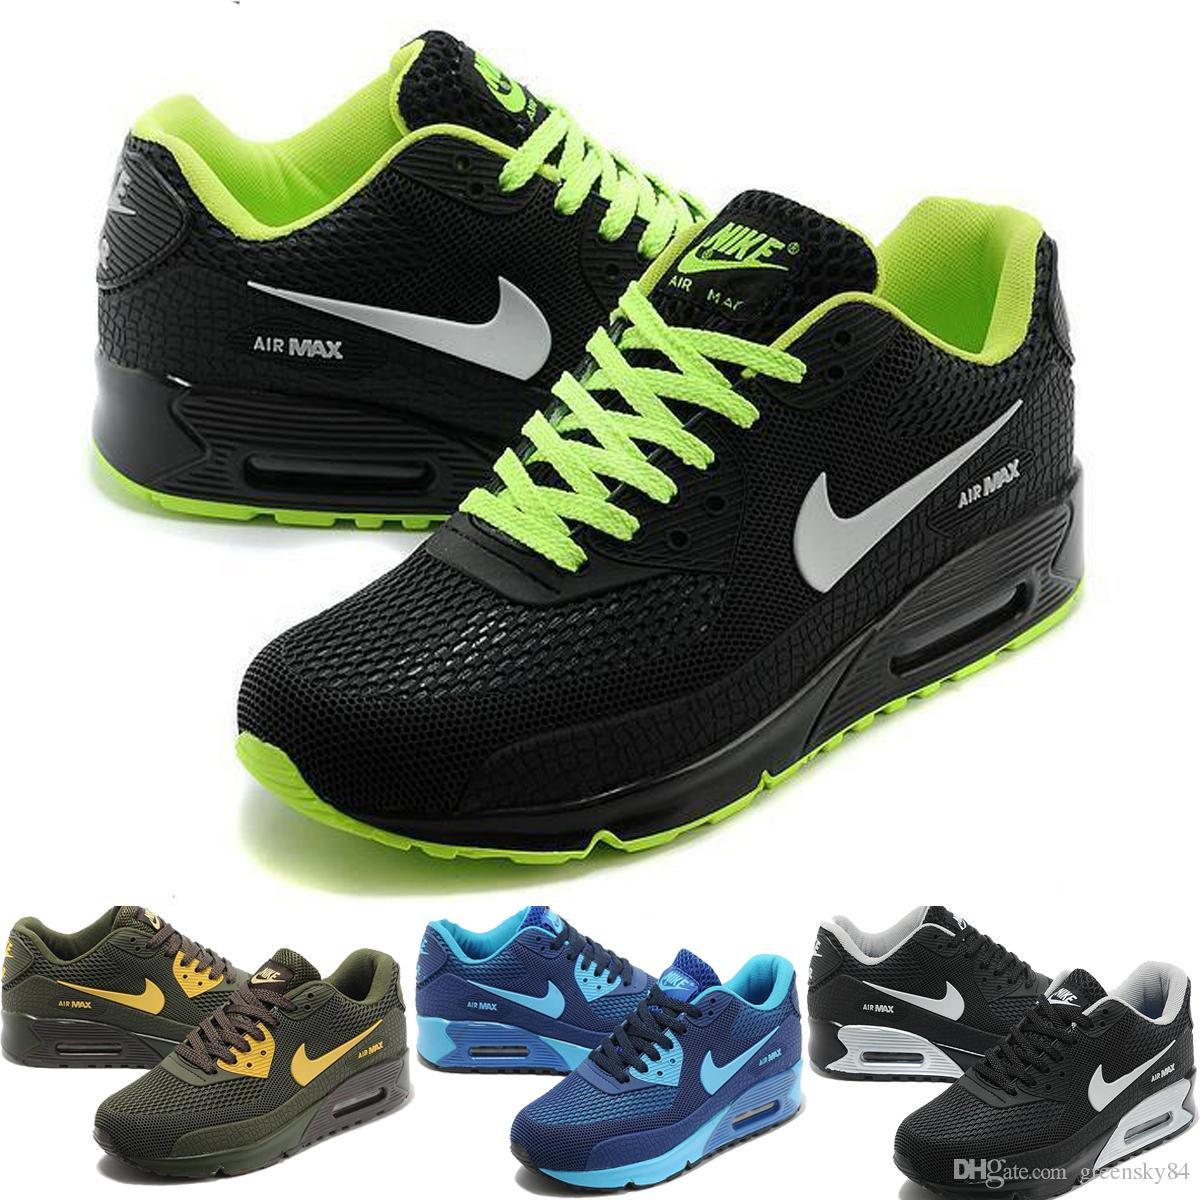 Nike Air Max 90 Mens Running Shoes On Sale